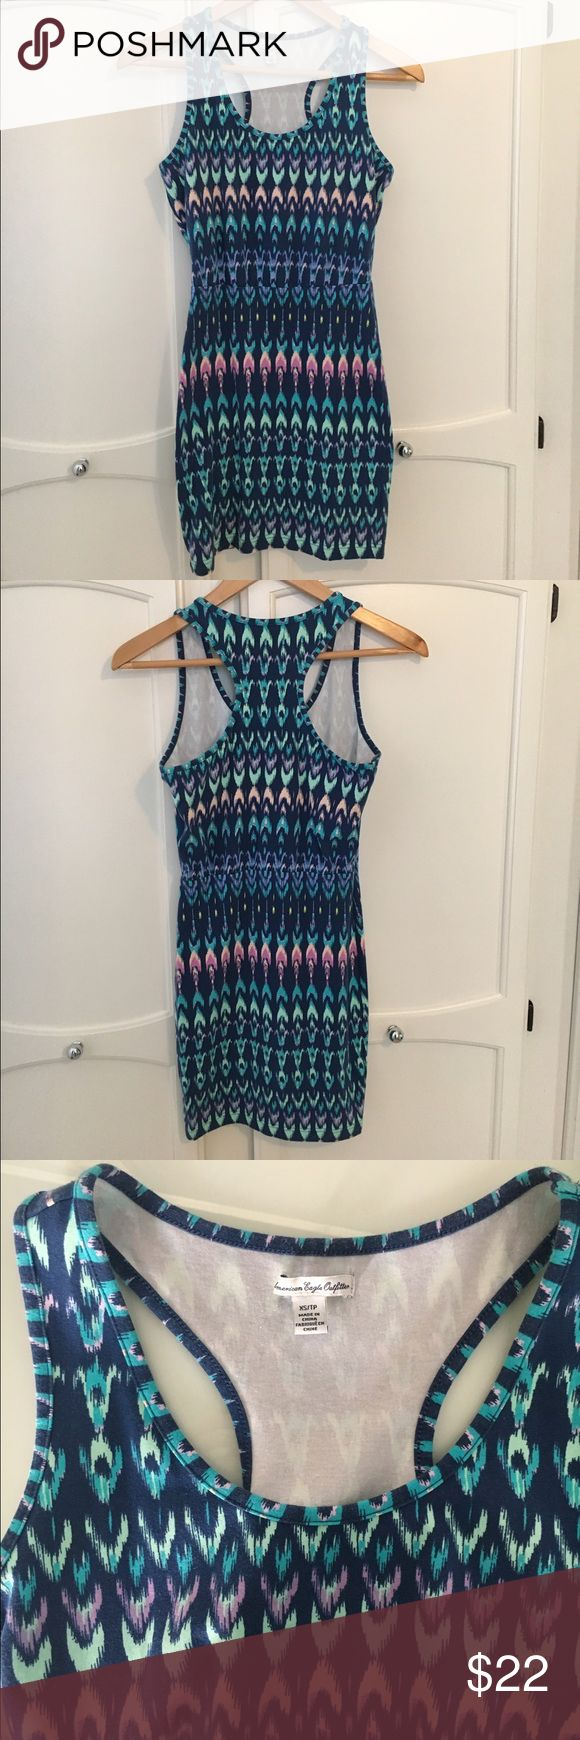 American Eagle Bodycon Dress Cute, comfy, multi-colored bodycon dress. Never worn! Feel free to make an offer! American Eagle Outfitters Dresses